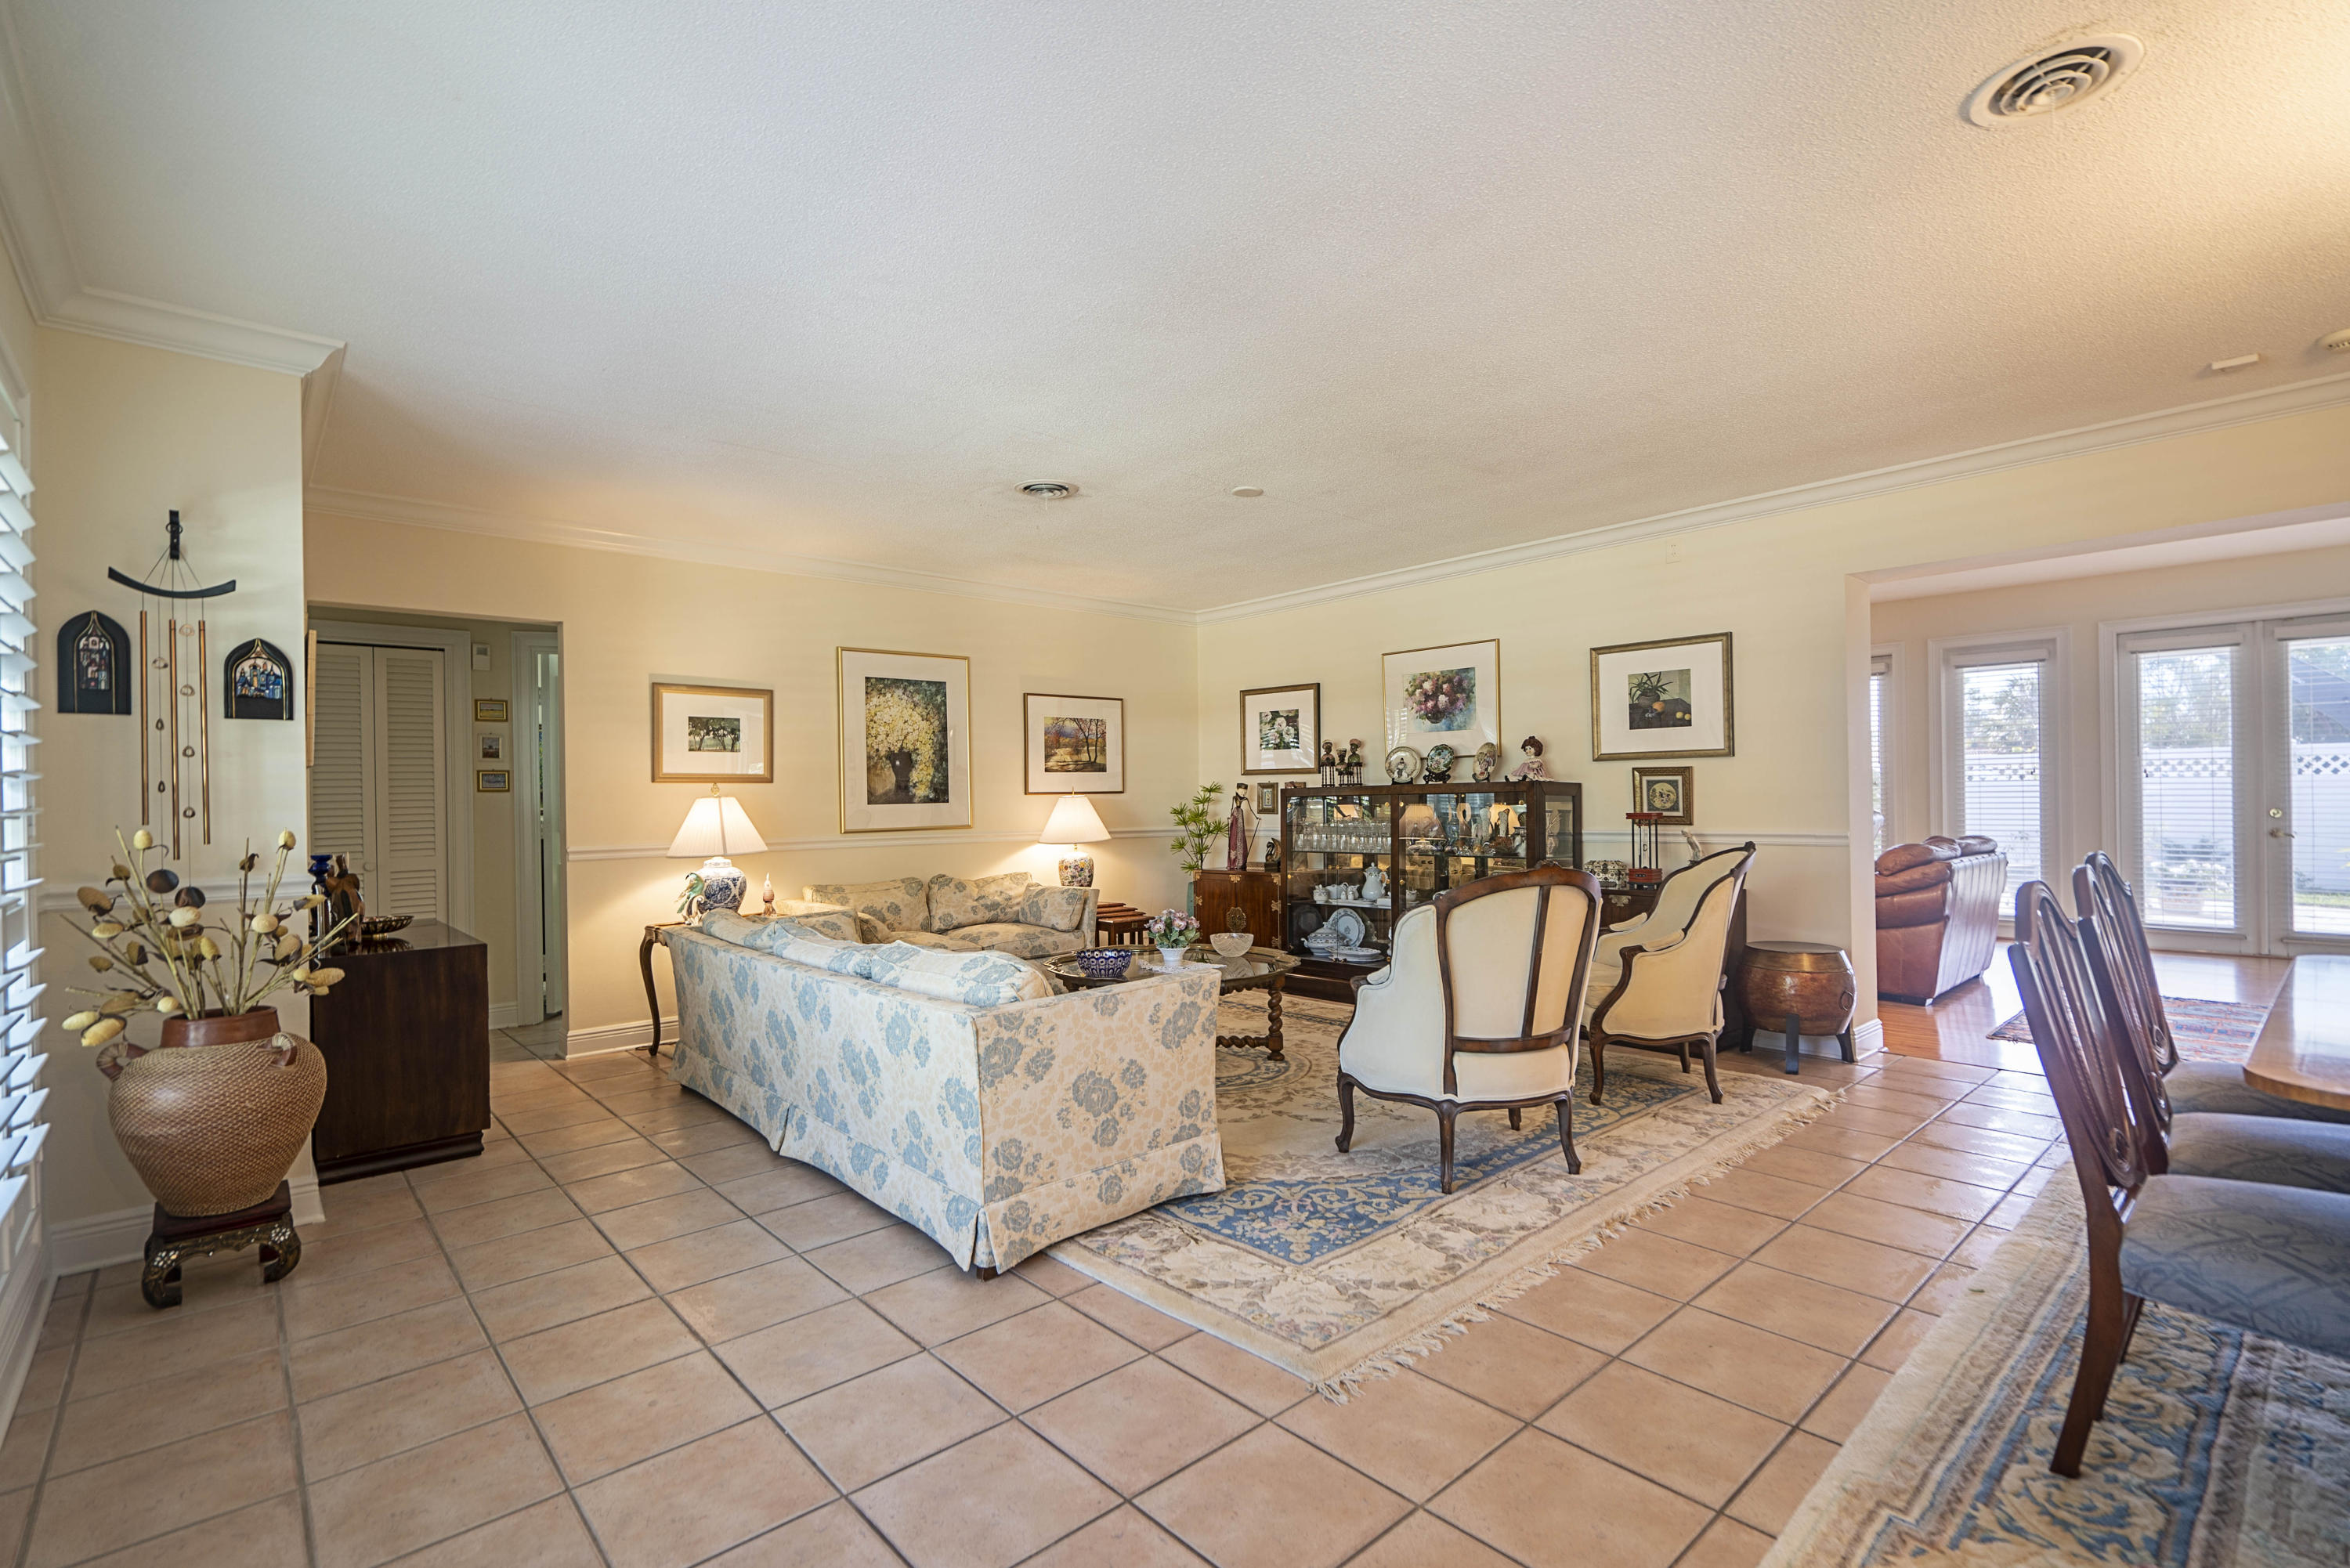 PALMETTO PARK TERRACE REALTY